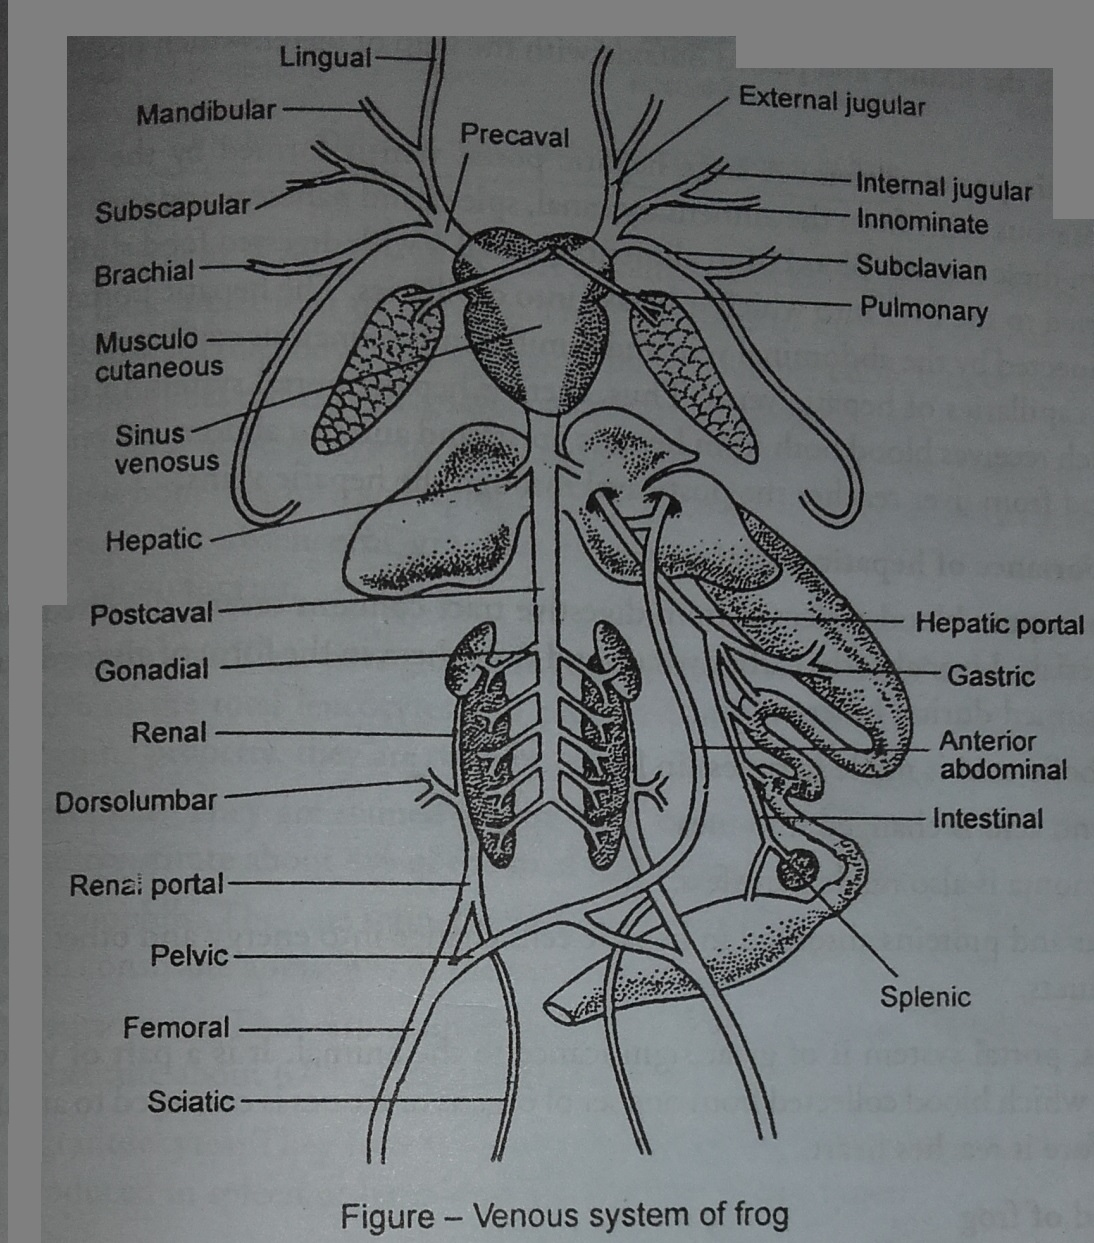 Zoology For Higher Secondary Level Frog Venous System